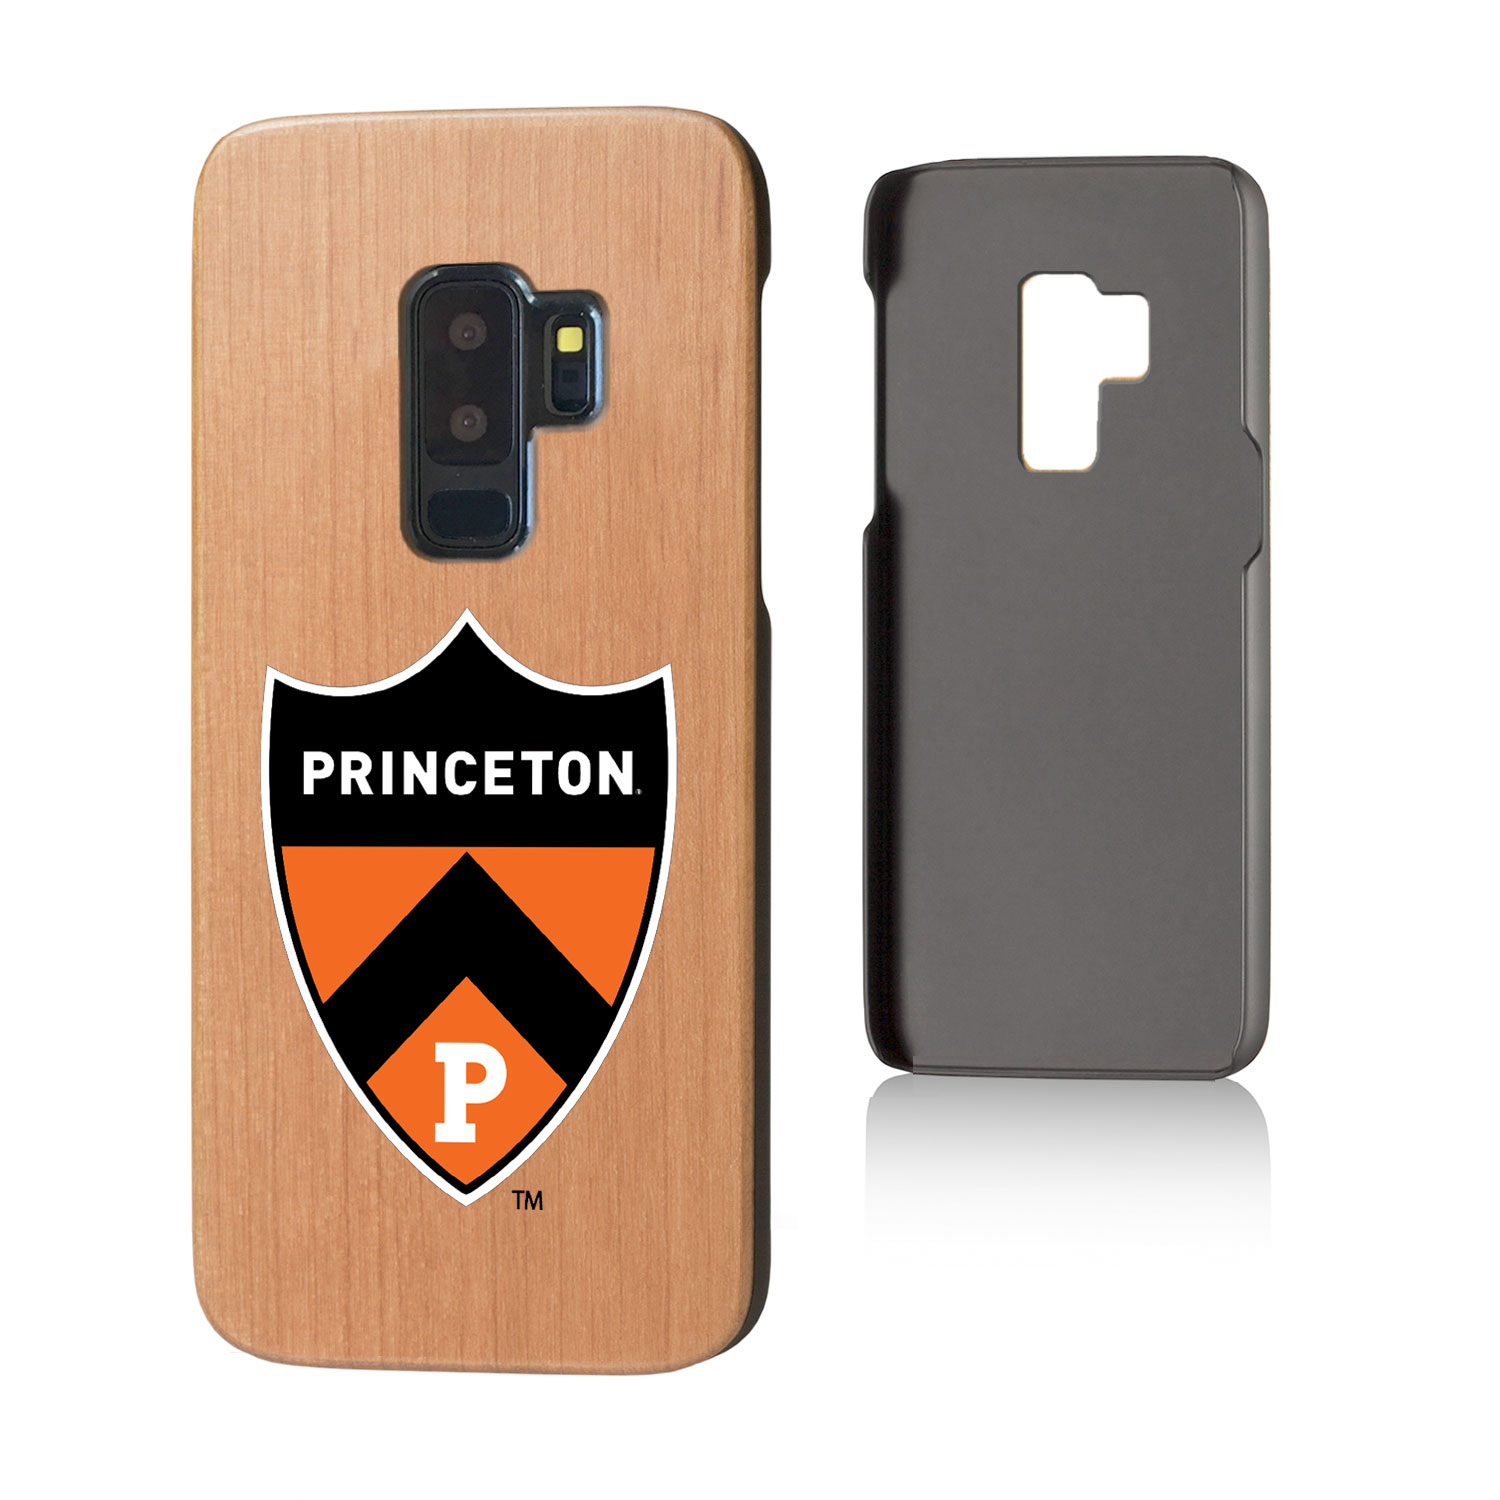 Princeton Tigers Insignia Cherry Case for Galaxy S9+ by Keyscaper